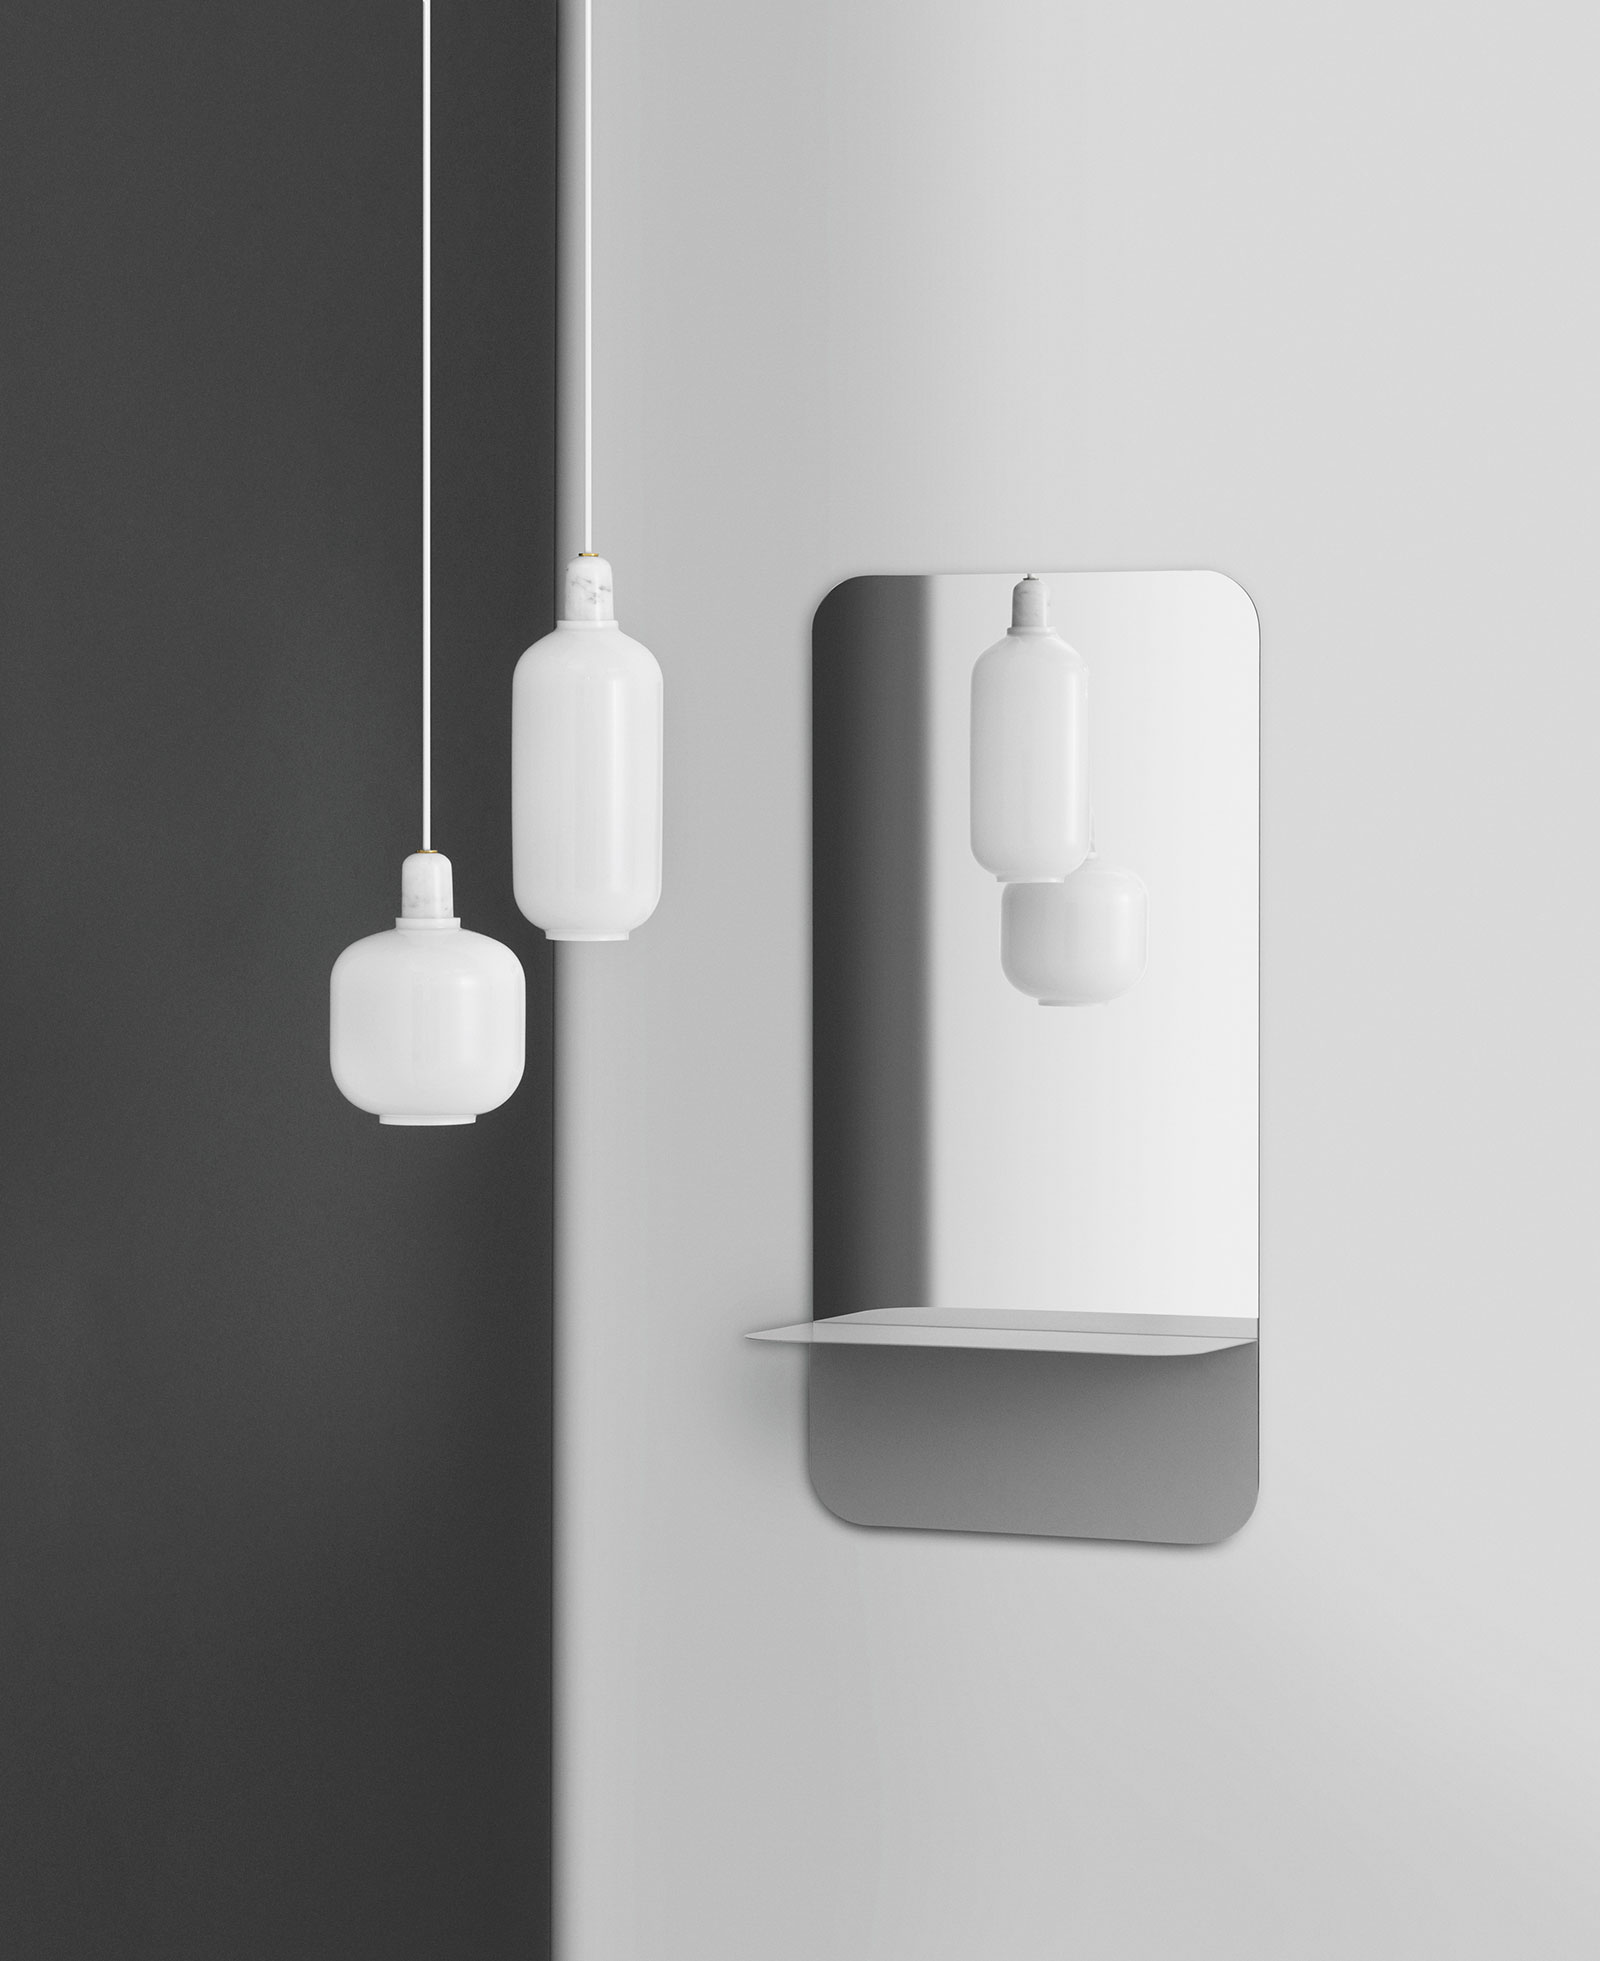 Mood lights amp mood lighting - Amp Pendant Made Of White Opalescent Glass And White Marble